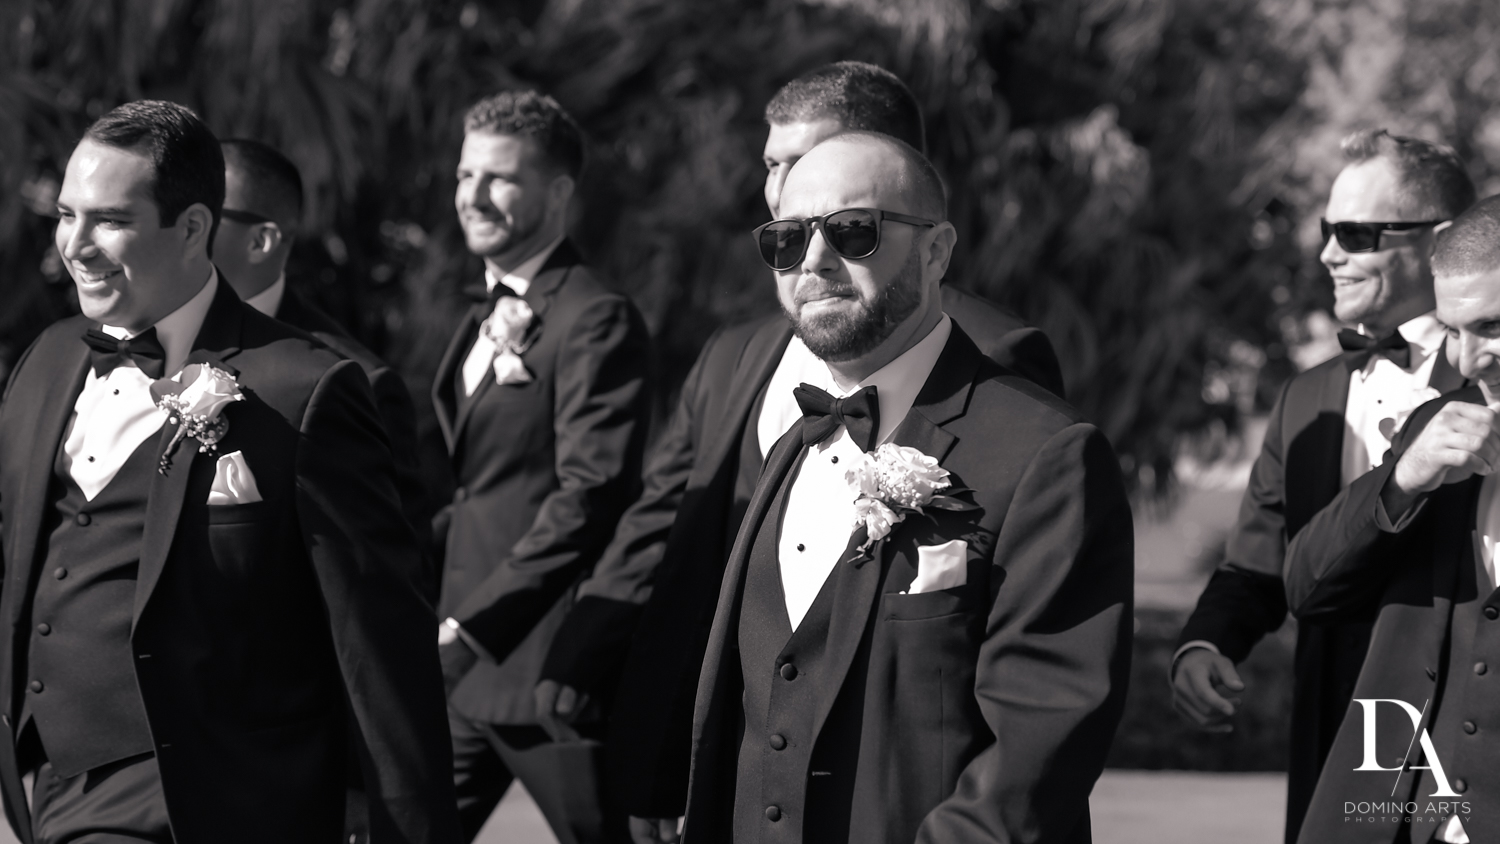 Groomsmen at Romantic Outdoors Wedding at Woodfield Country Club in Boca Raton, Florida by Domino Arts Photography